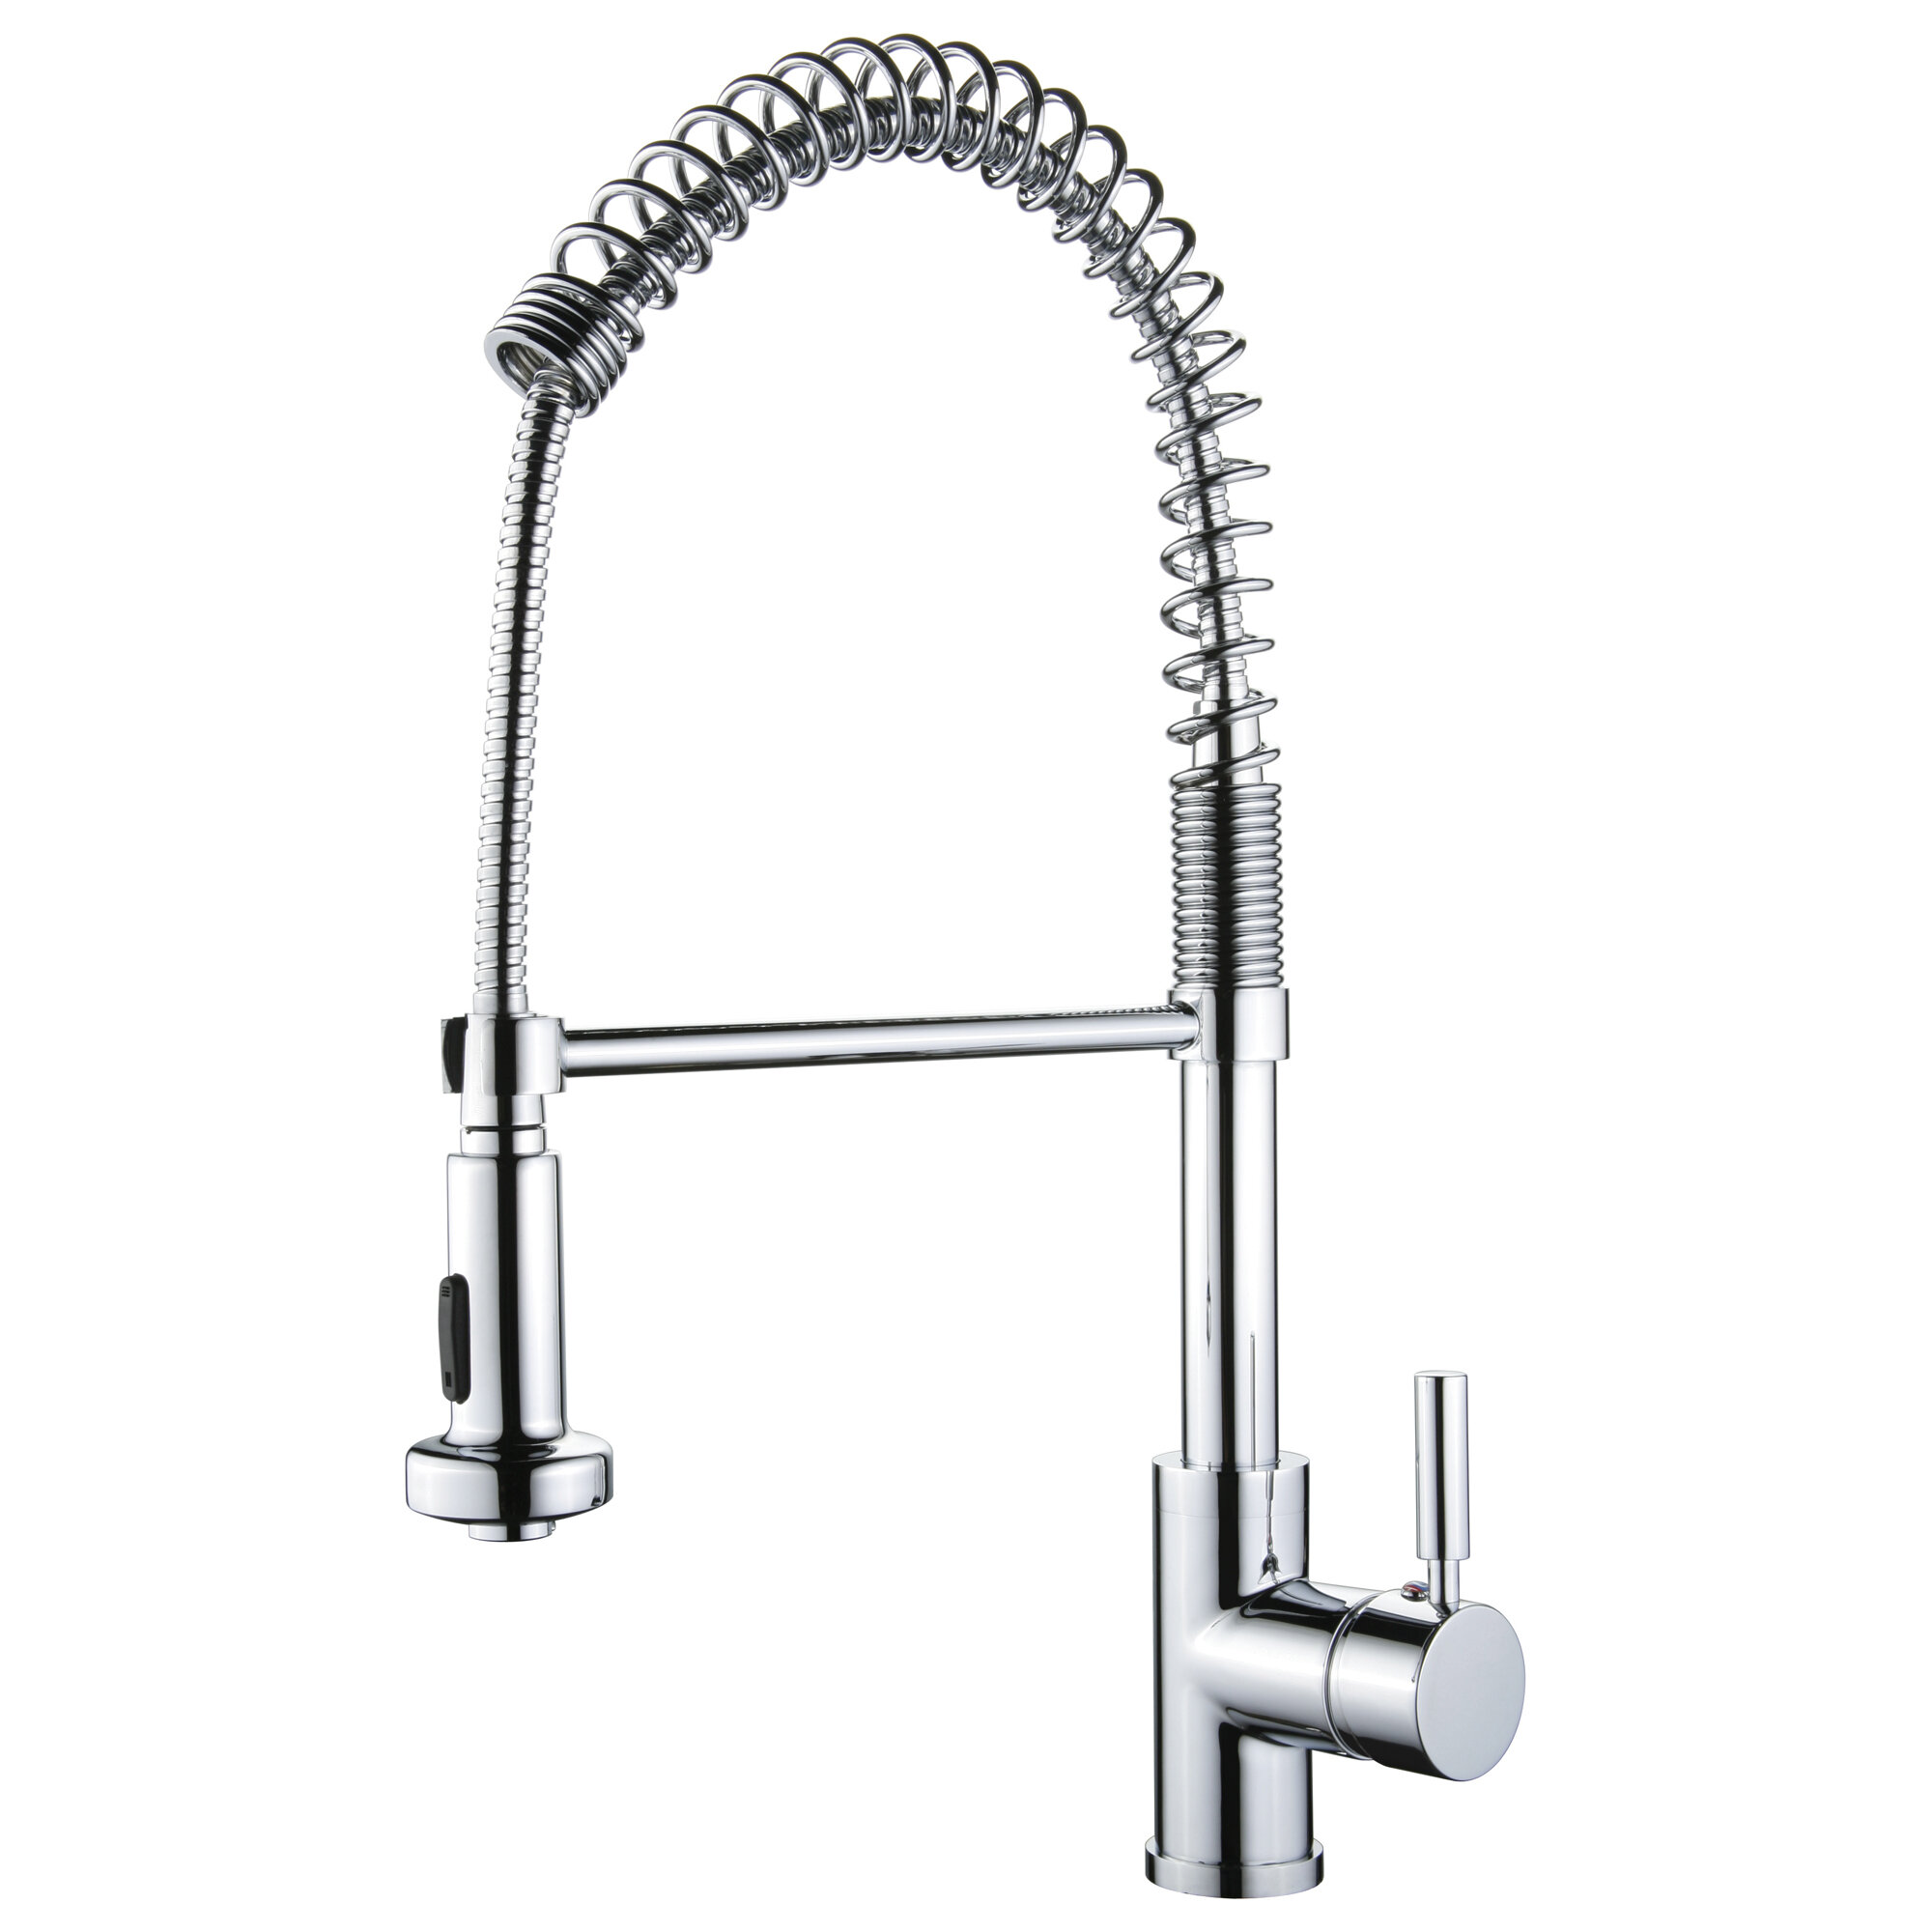 pdx handle spray by deck fontainebyitalia head improvement faucet faucets plate pull spring with down italia single home cone fontaine kitchen